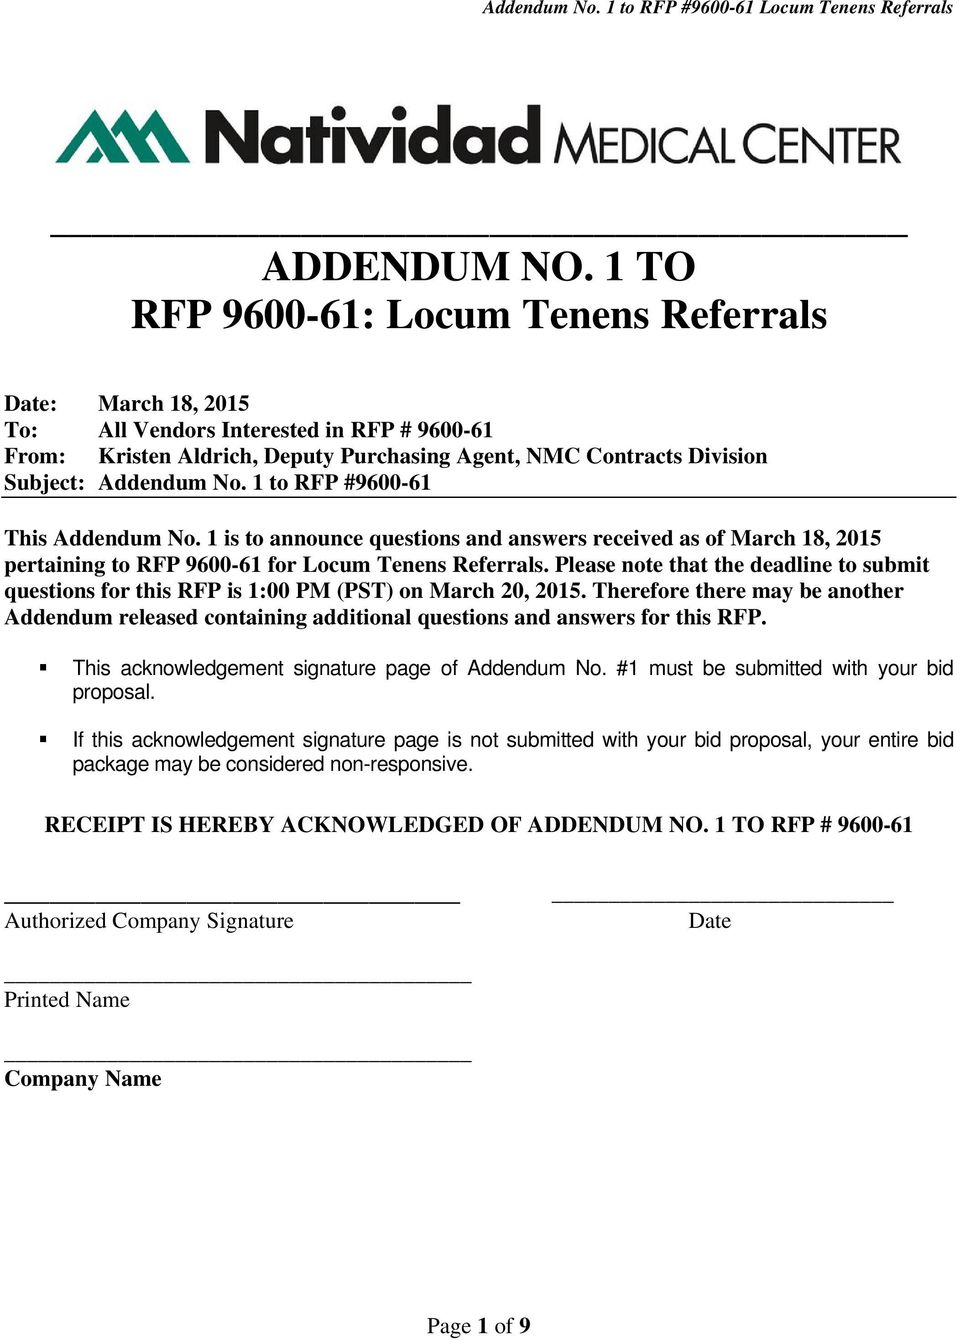 1 to RFP #9600-61 This Addendum No. 1 is to announce questions and answers received as of March 18, 2015 pertaining to RFP 9600-61 for Locum Tenens Referrals.